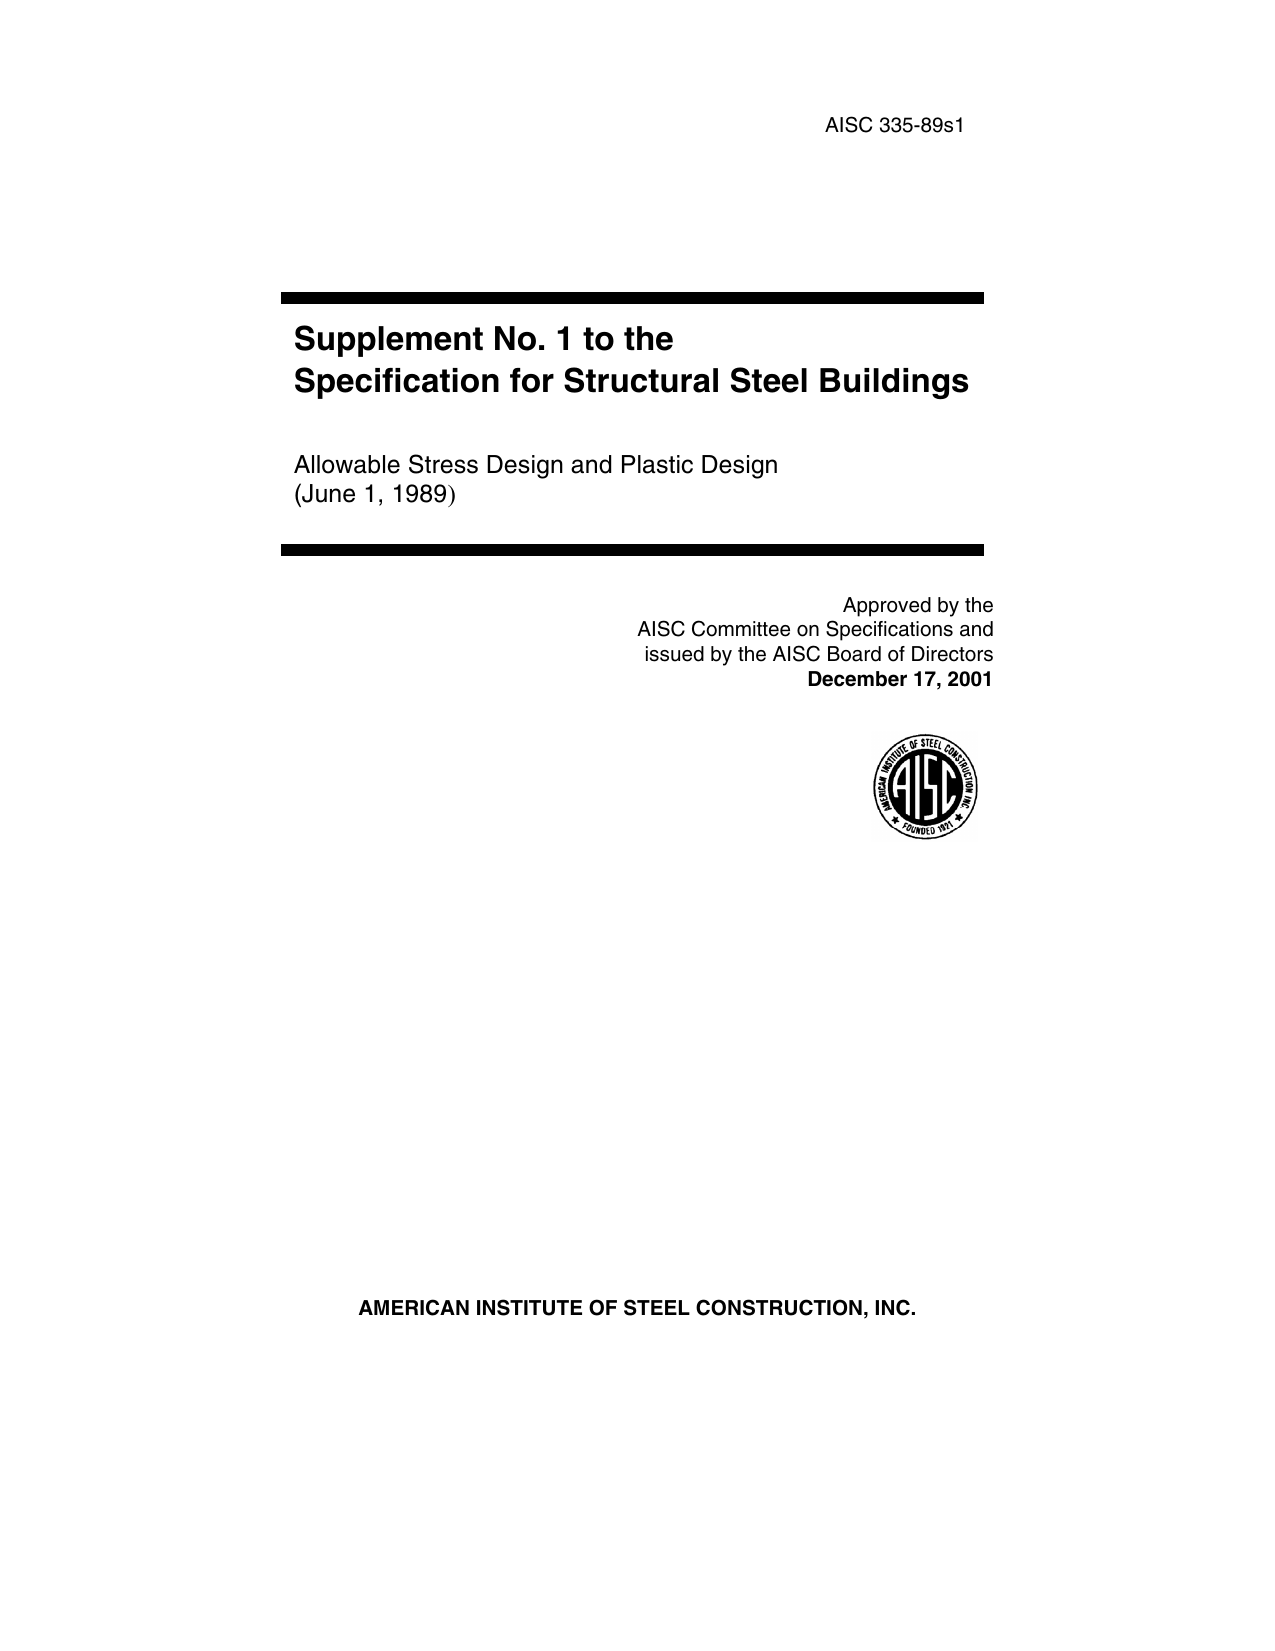 Supplement No  1 to the Specification for Structural